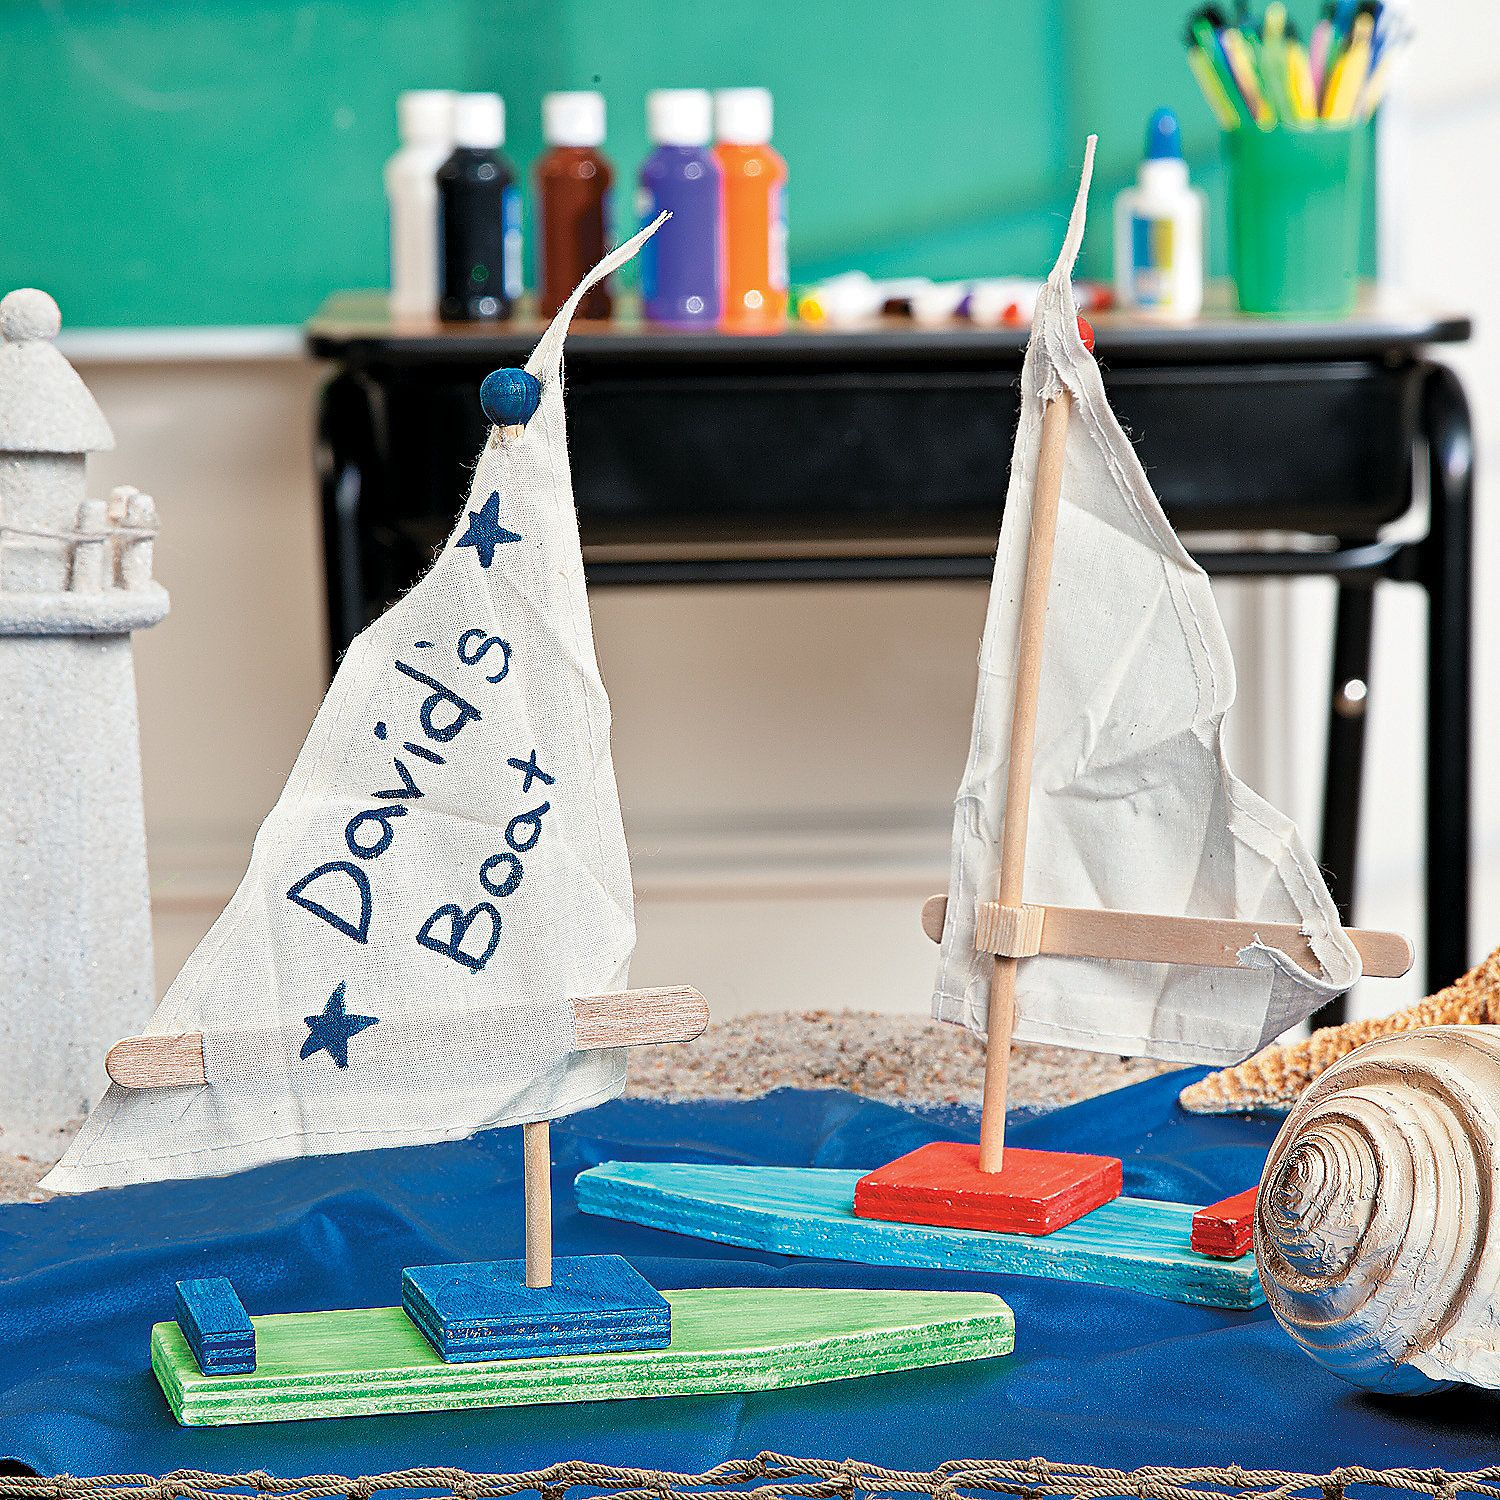 Kids Craft Project Ideas Part - 47: DIY Sailboat Project Idea | Set Sail For Summer Fun With This Easy Craft  For Kids